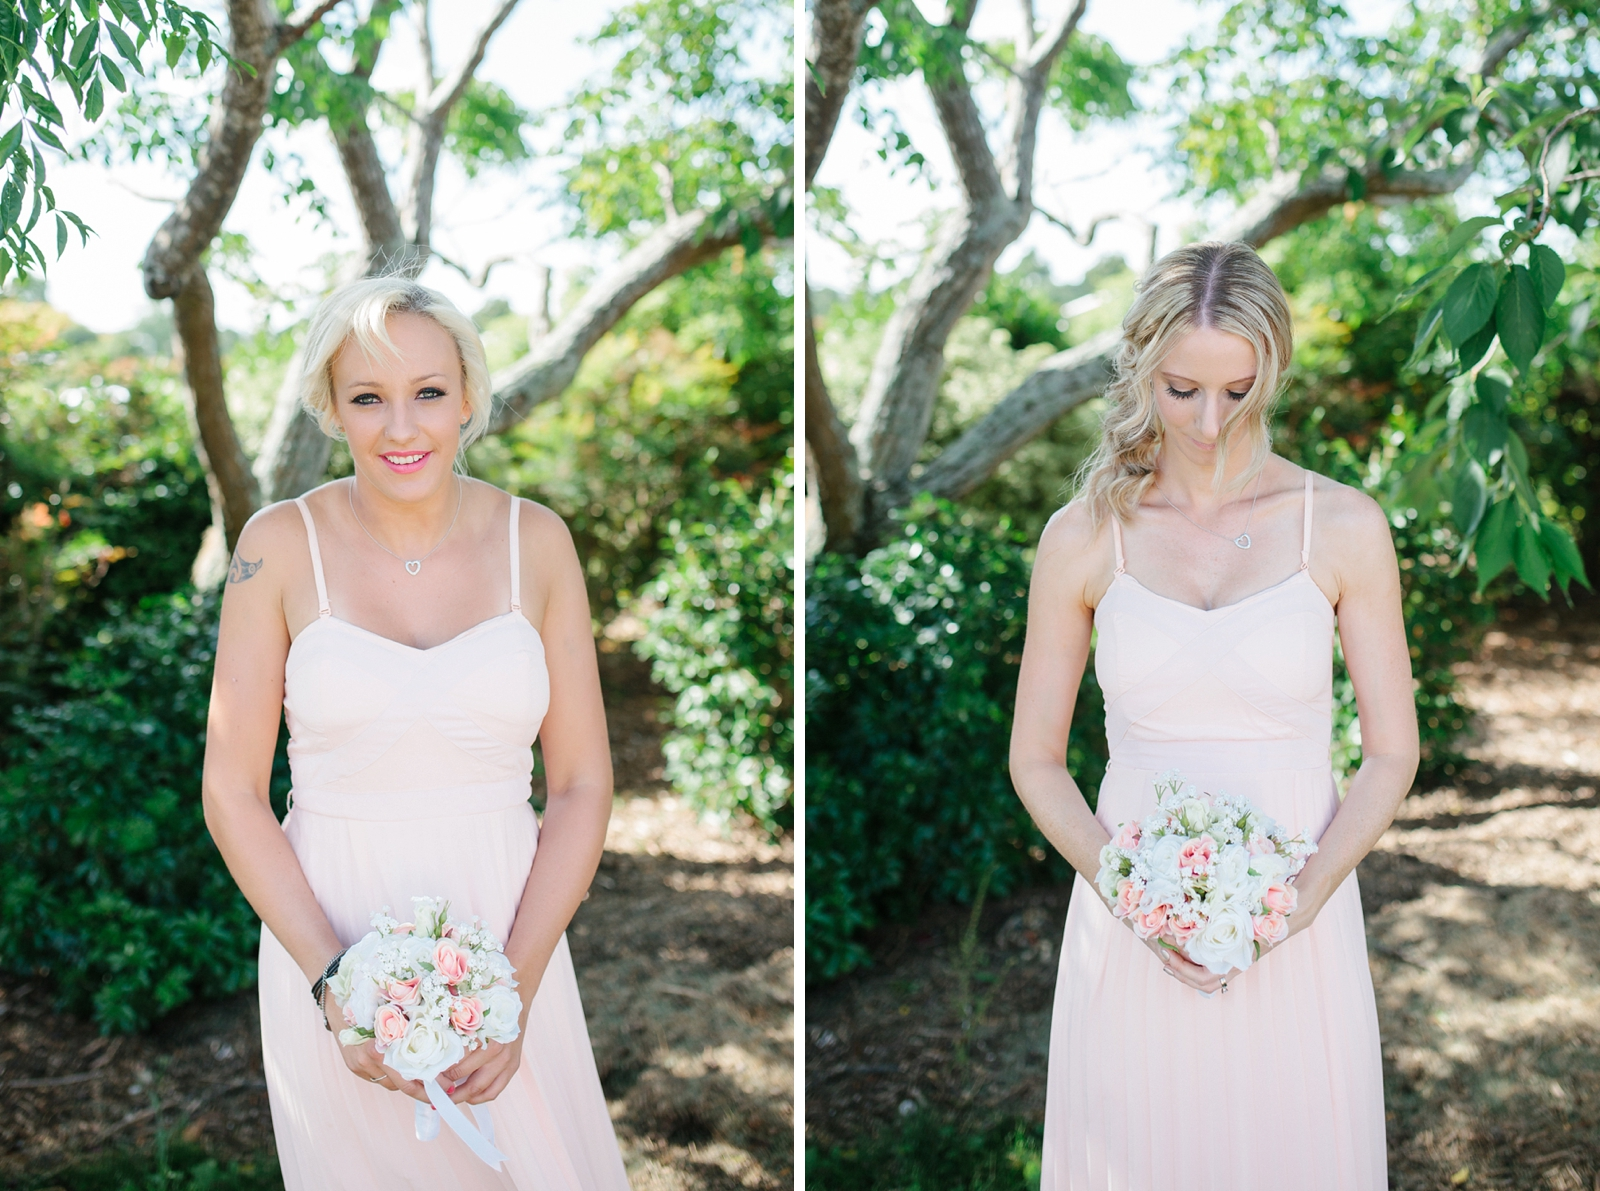 ConnorLaura_Auckland Wedding Photographer_Patty Lagera_0070.jpg